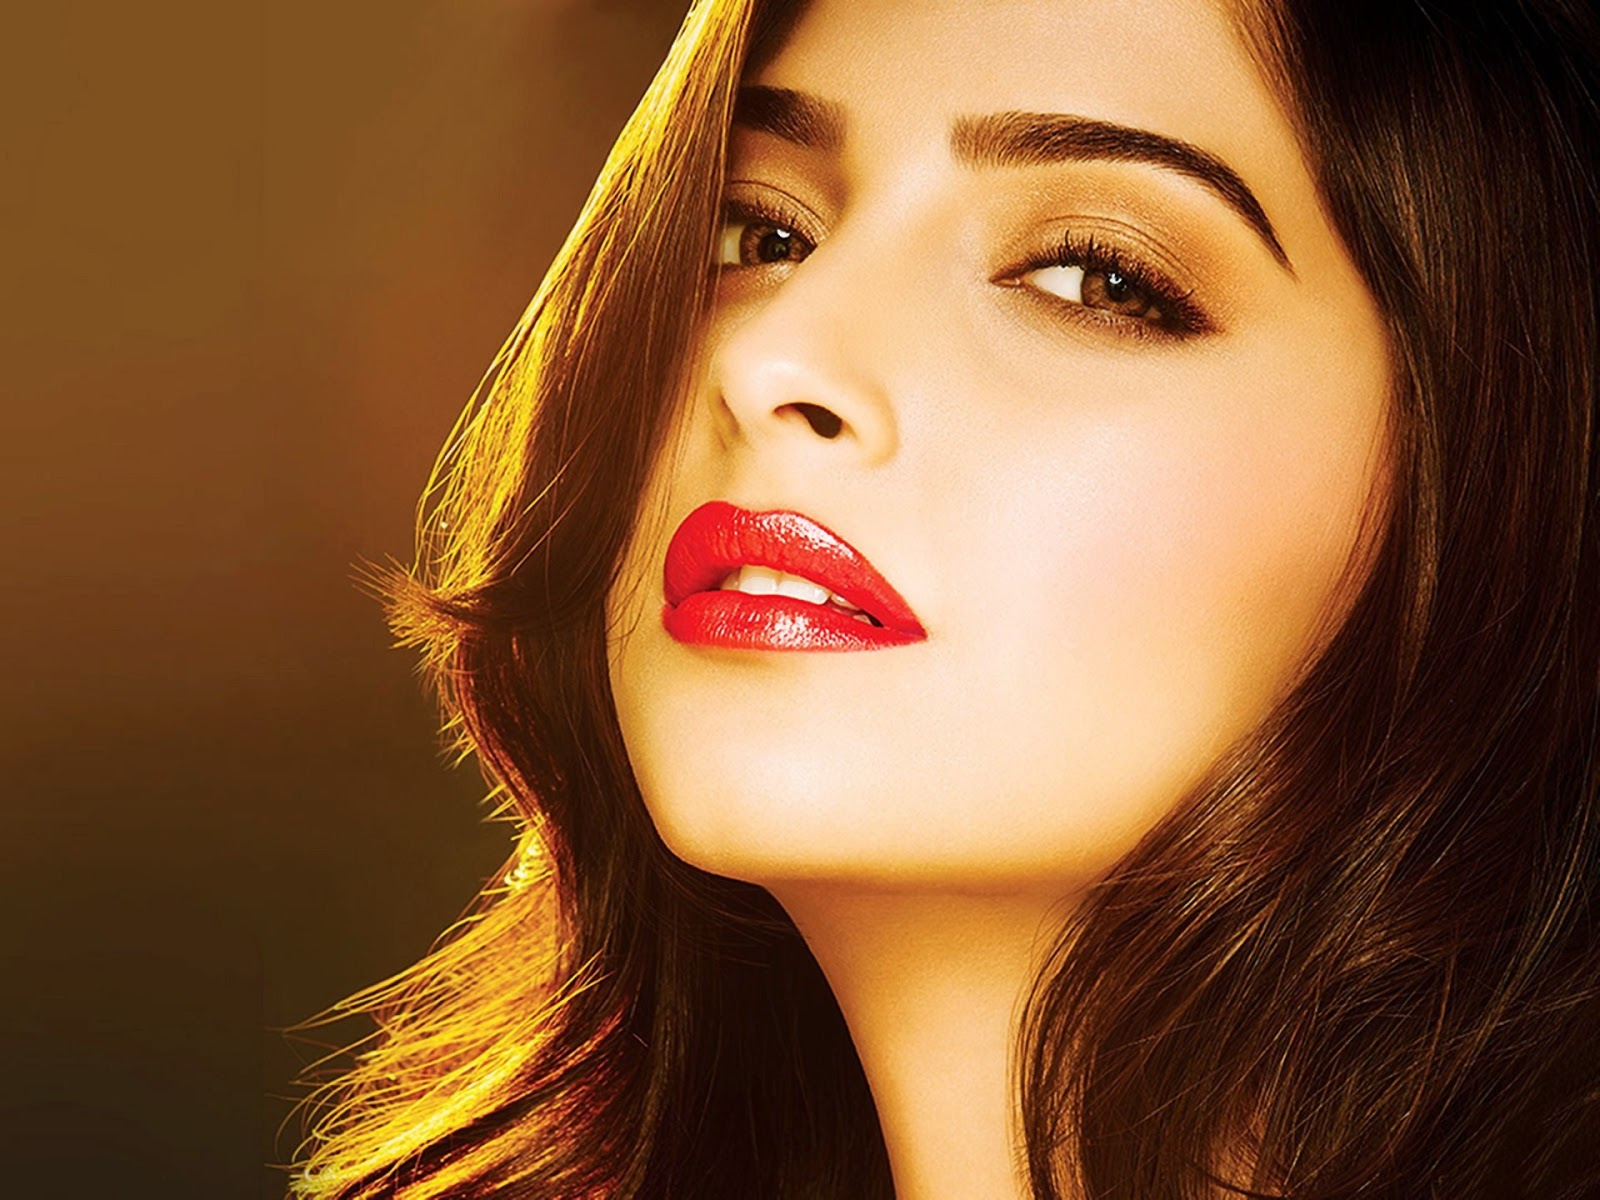 sonam kapoor images hd wallpaper - all 4u wallpaper